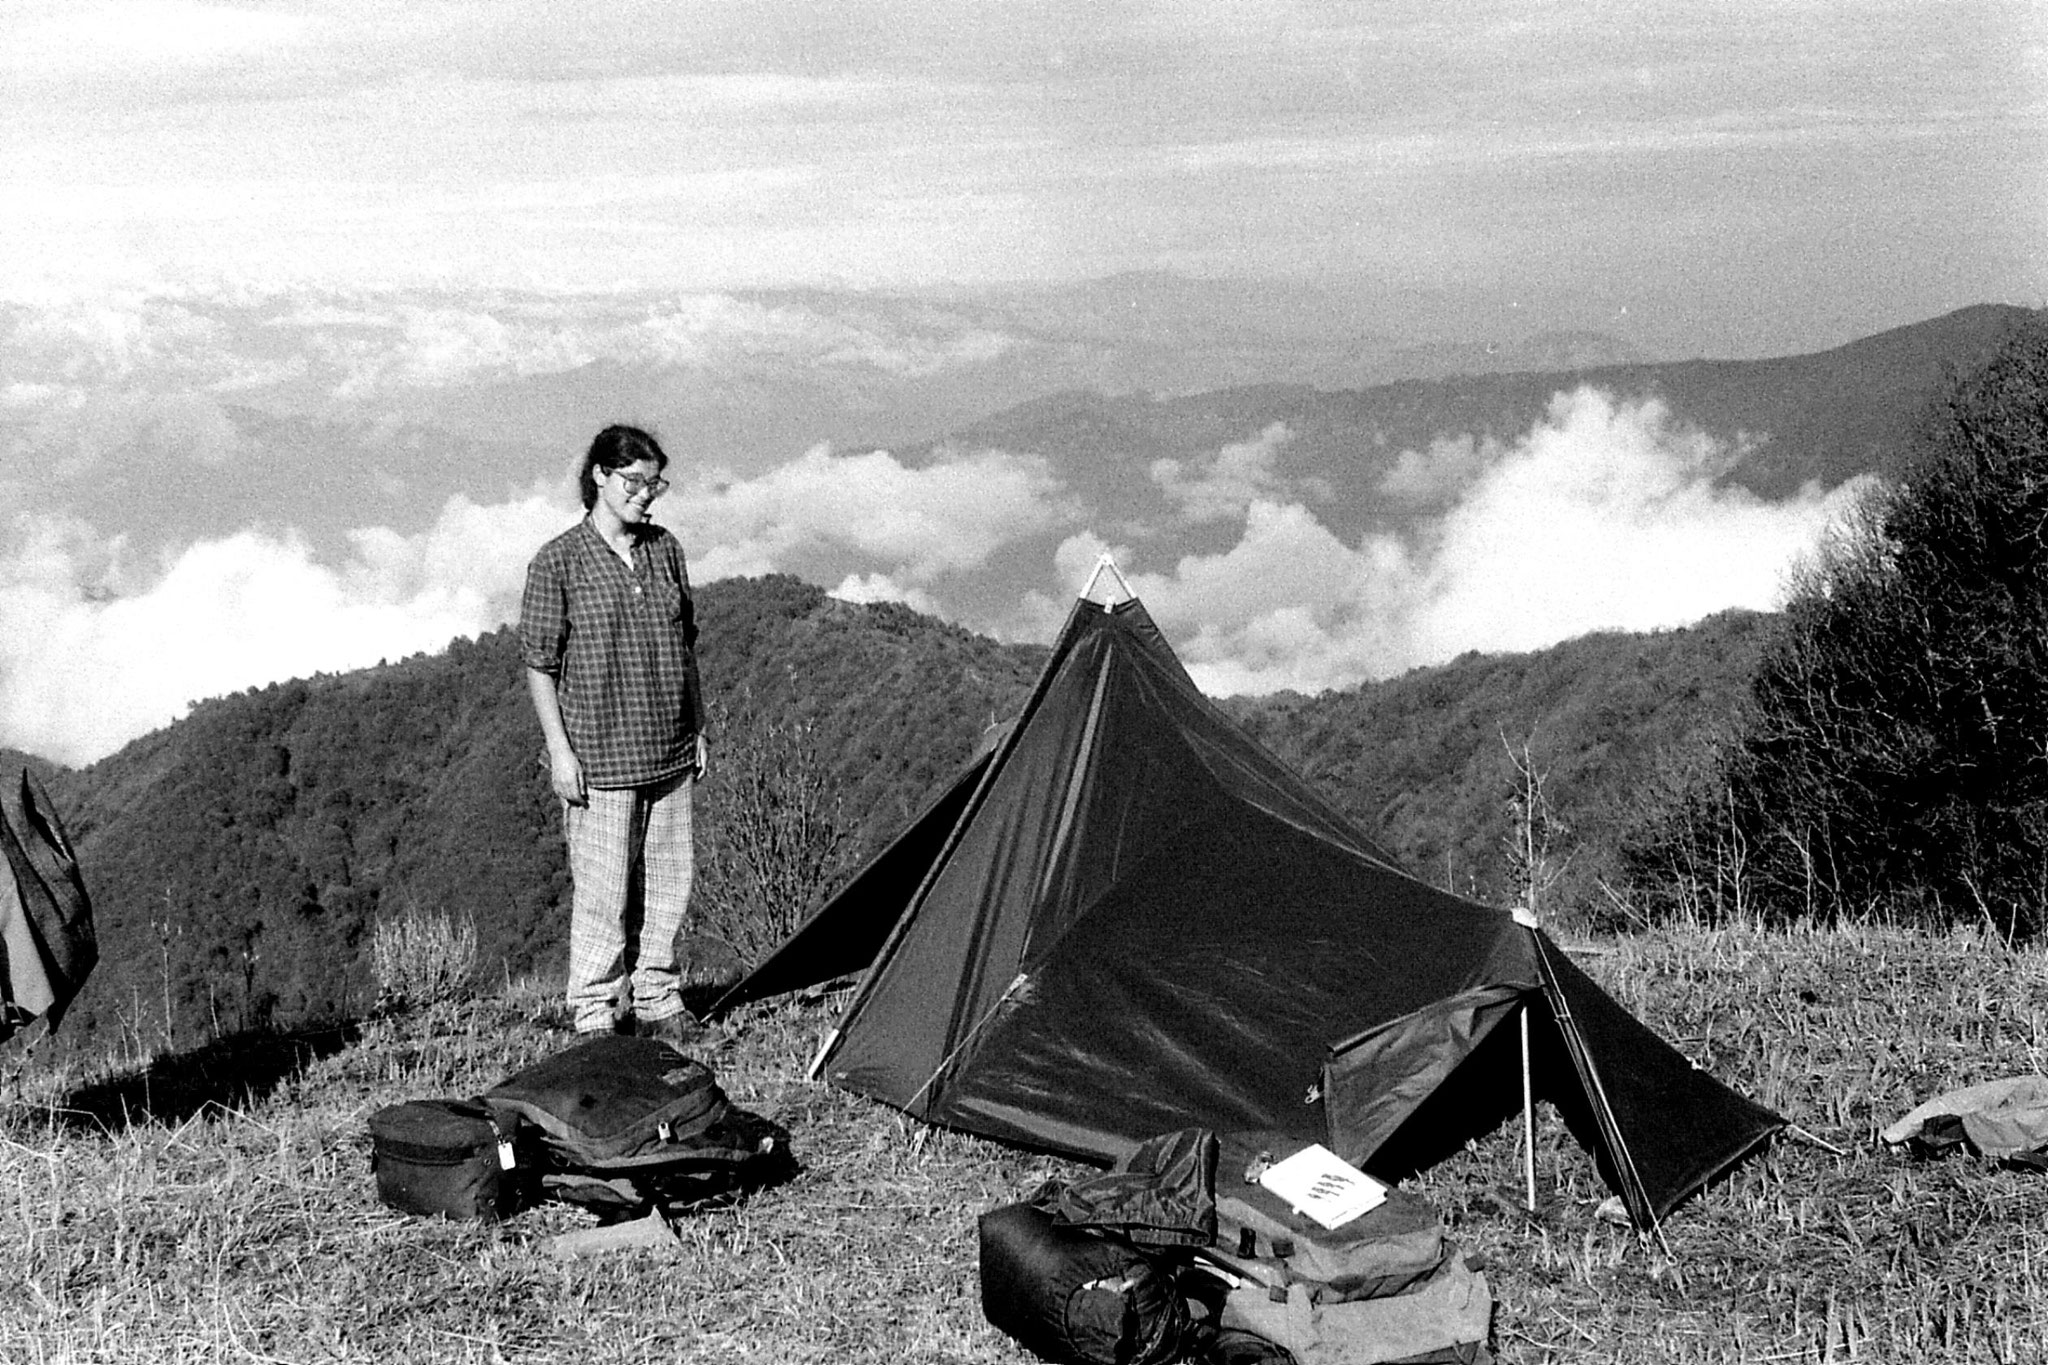 4/5/1990: 11: nr Tonglu with Kanchenjunga